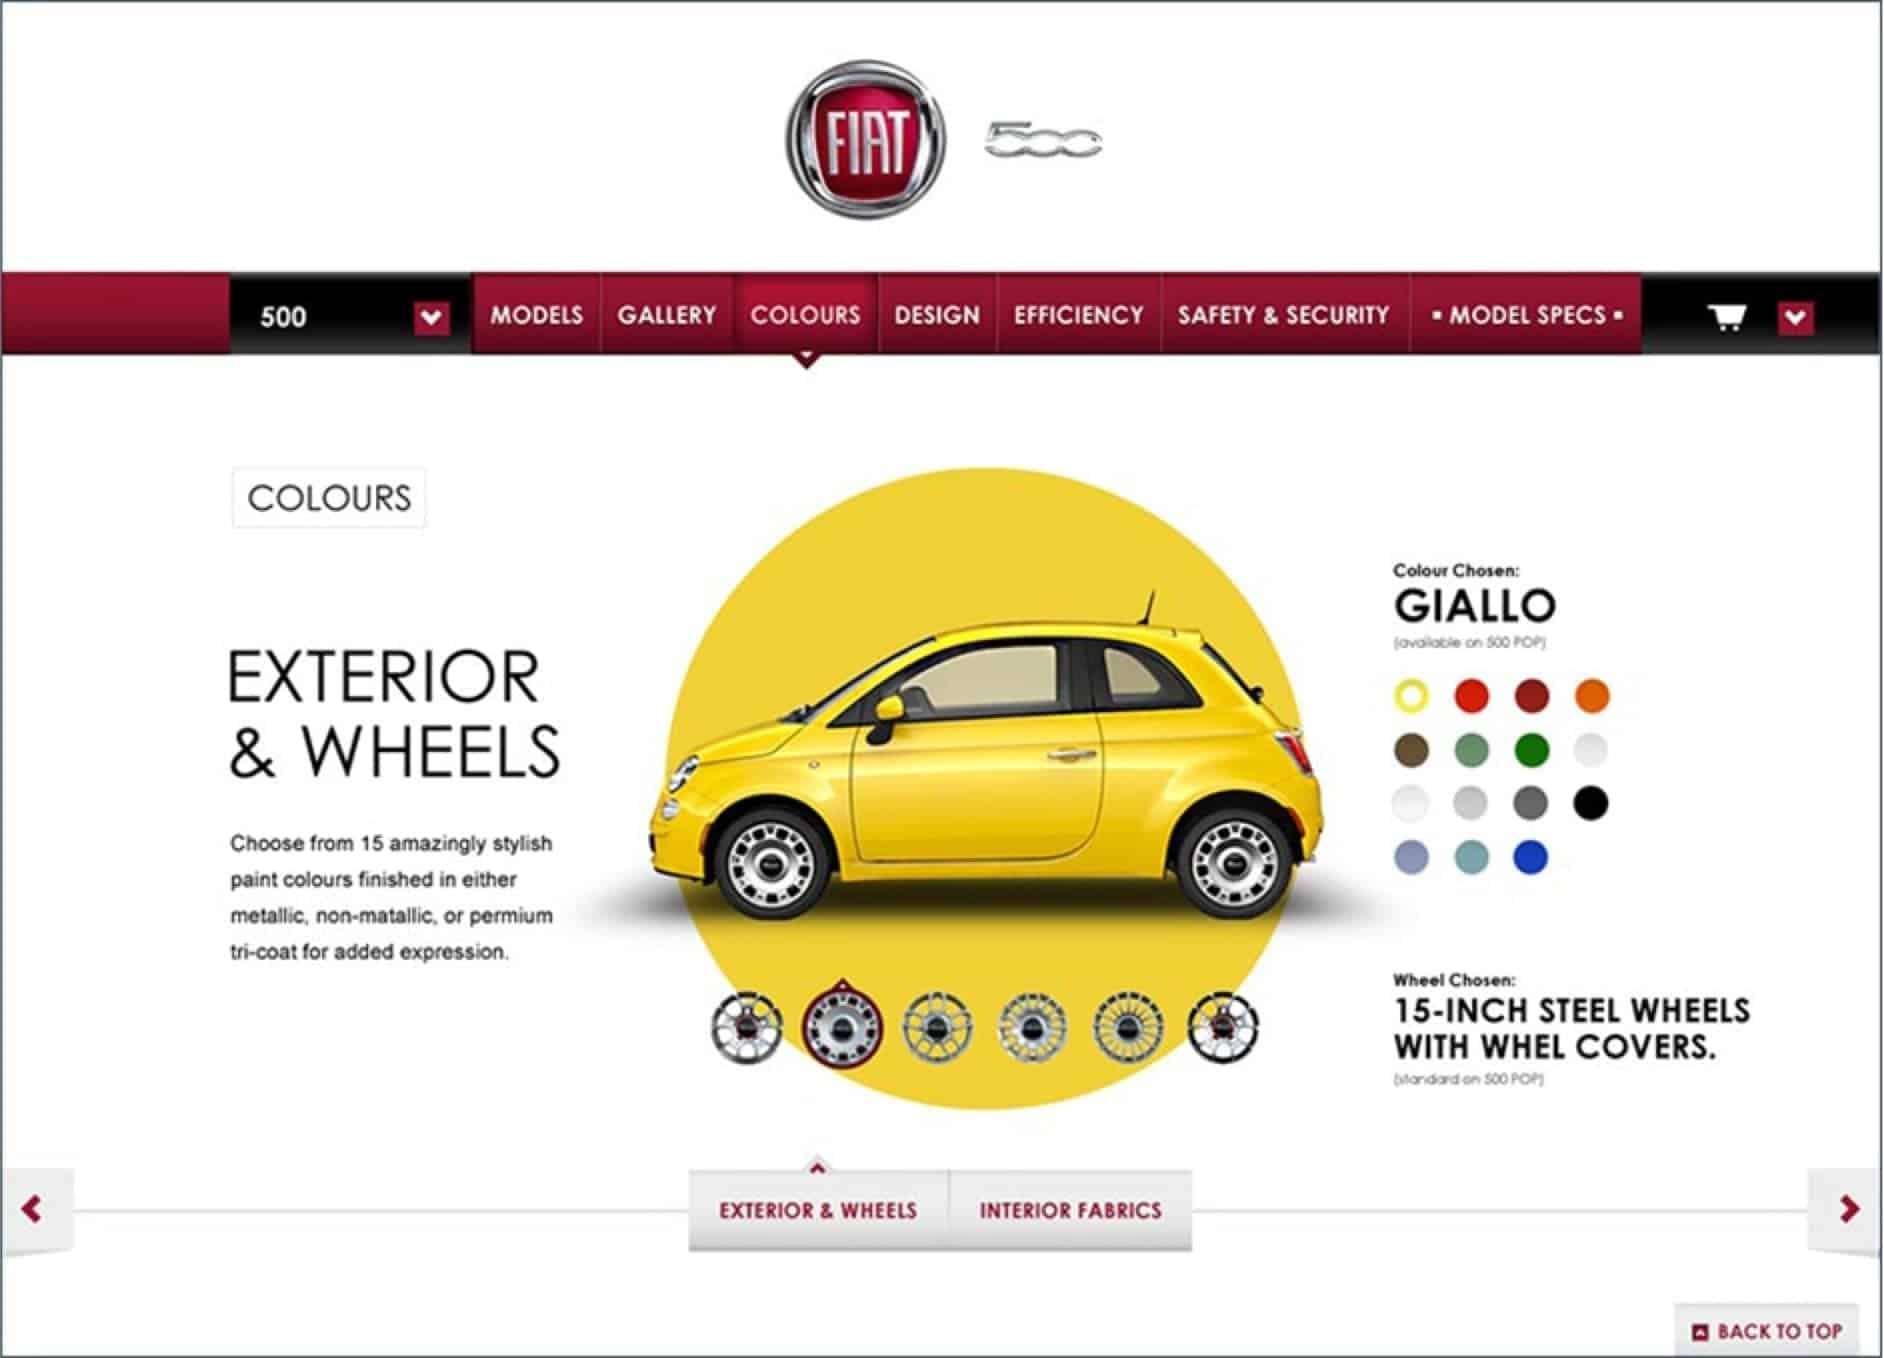 fiat-colours-wheels2x